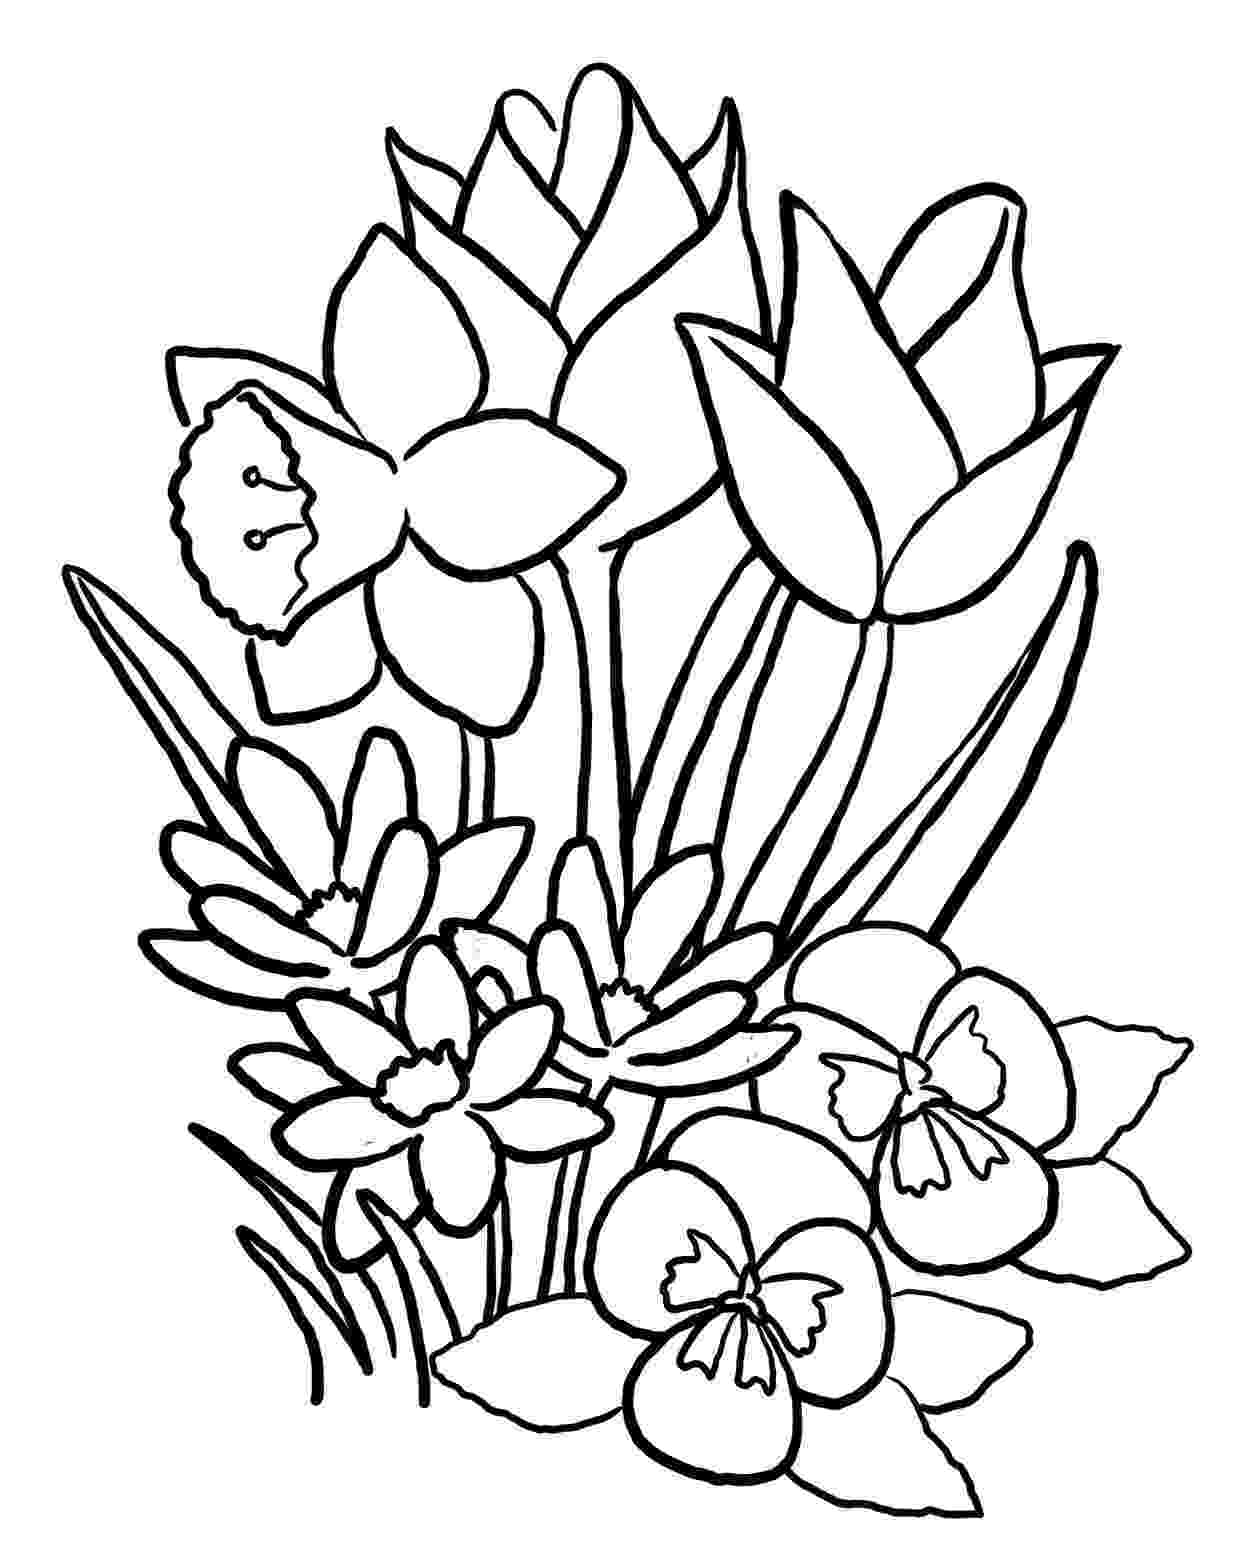 flowers printable coloring pages free printable flower coloring pages for kids best pages coloring flowers printable